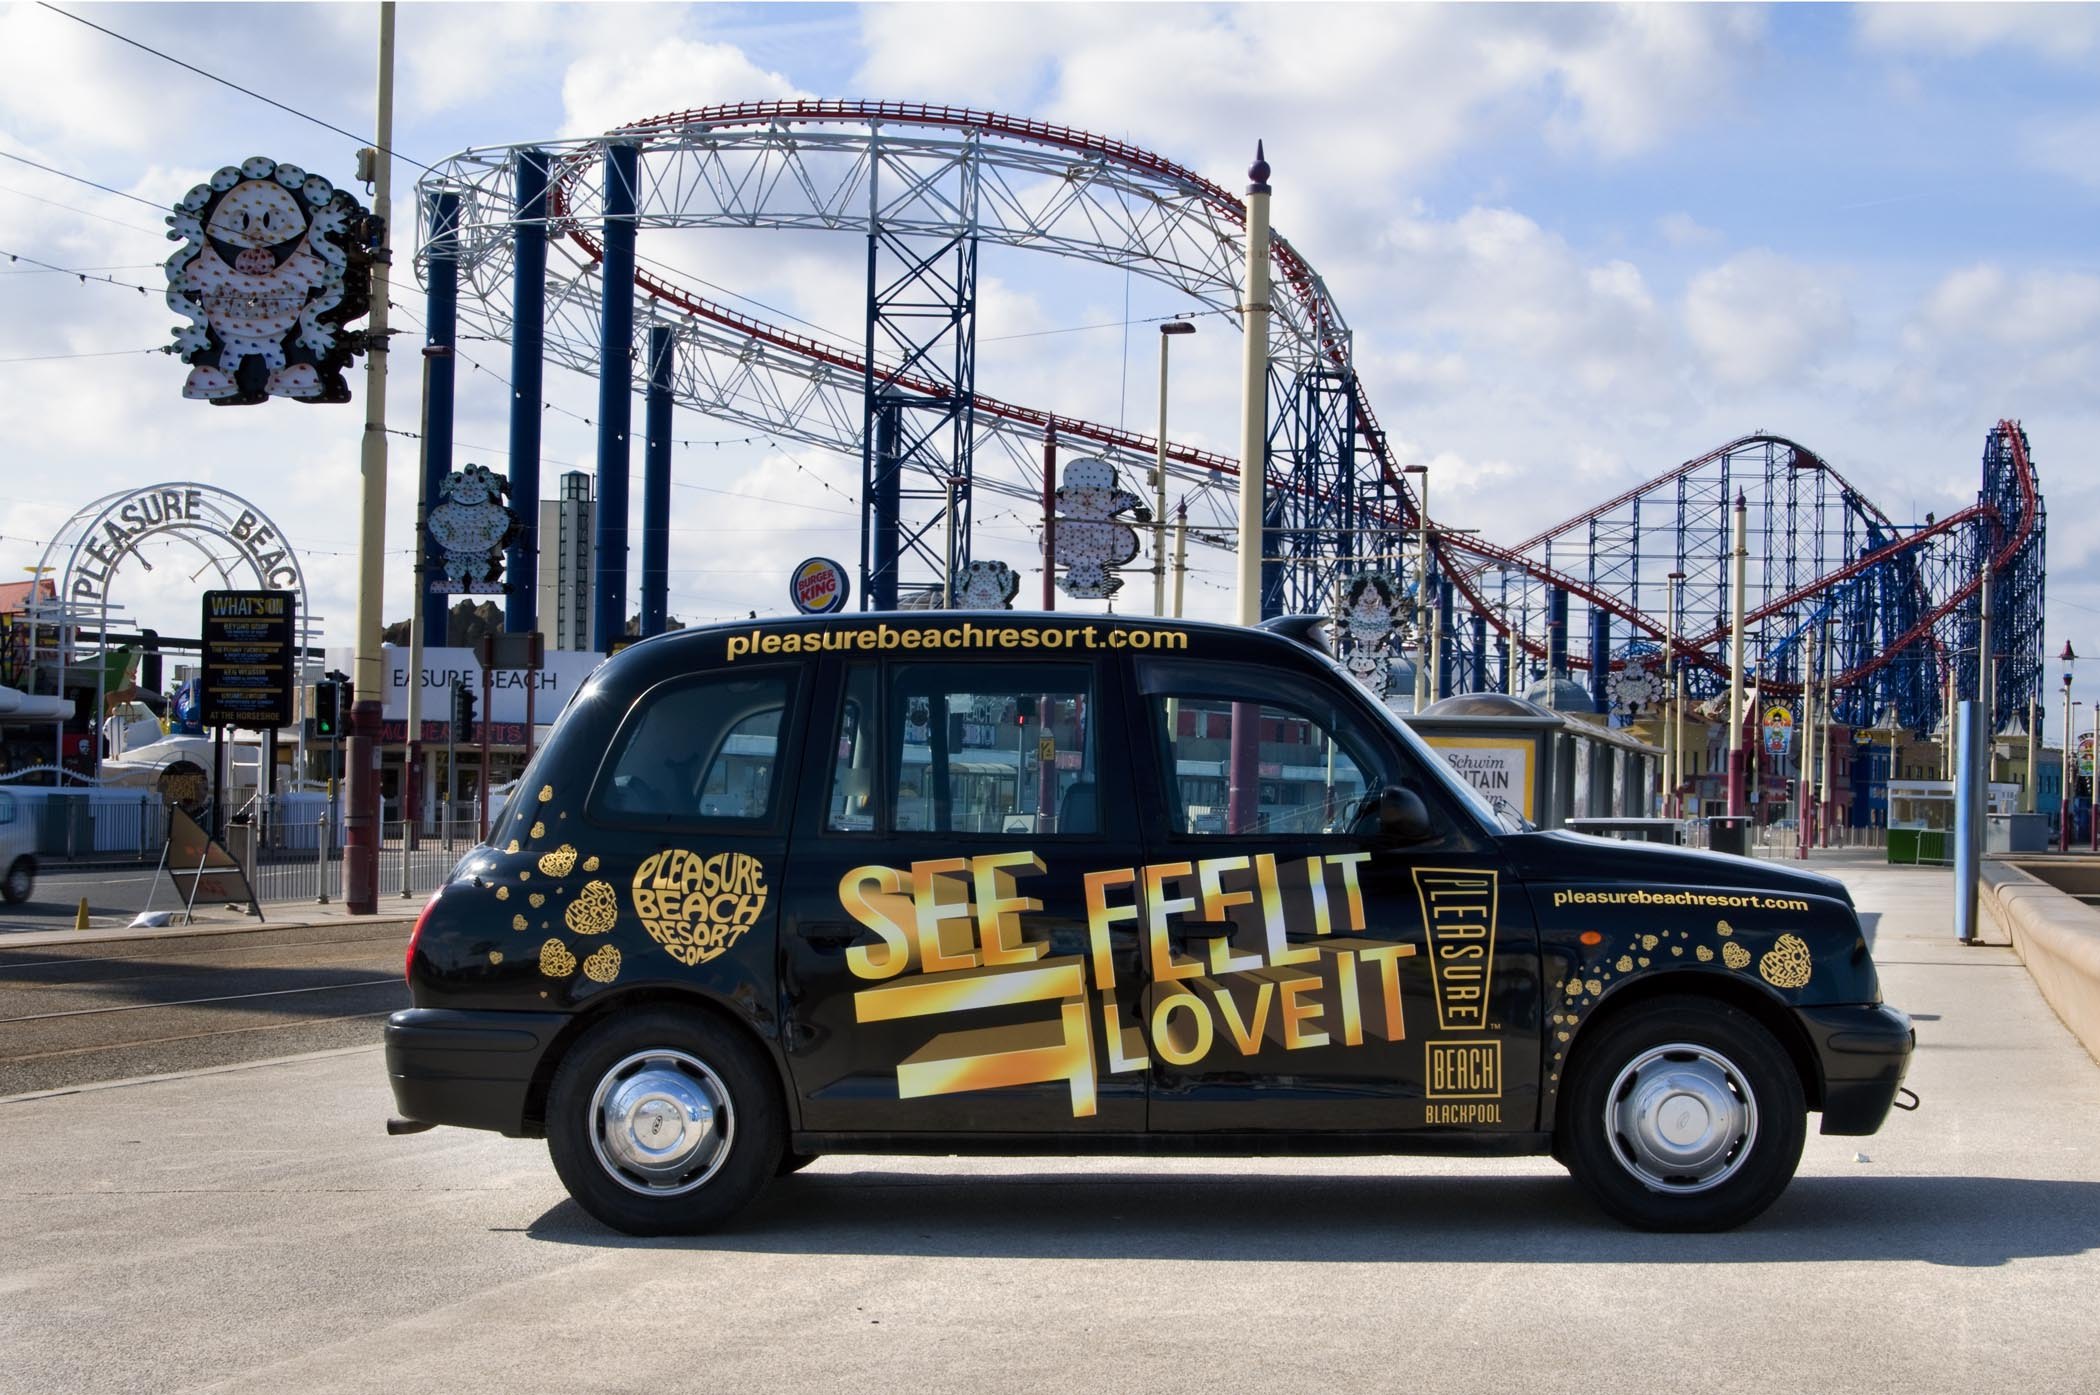 2009 Ubiquitous taxi advertising campaign for Blackpool Pleasure Beach - See It Feel It Love It